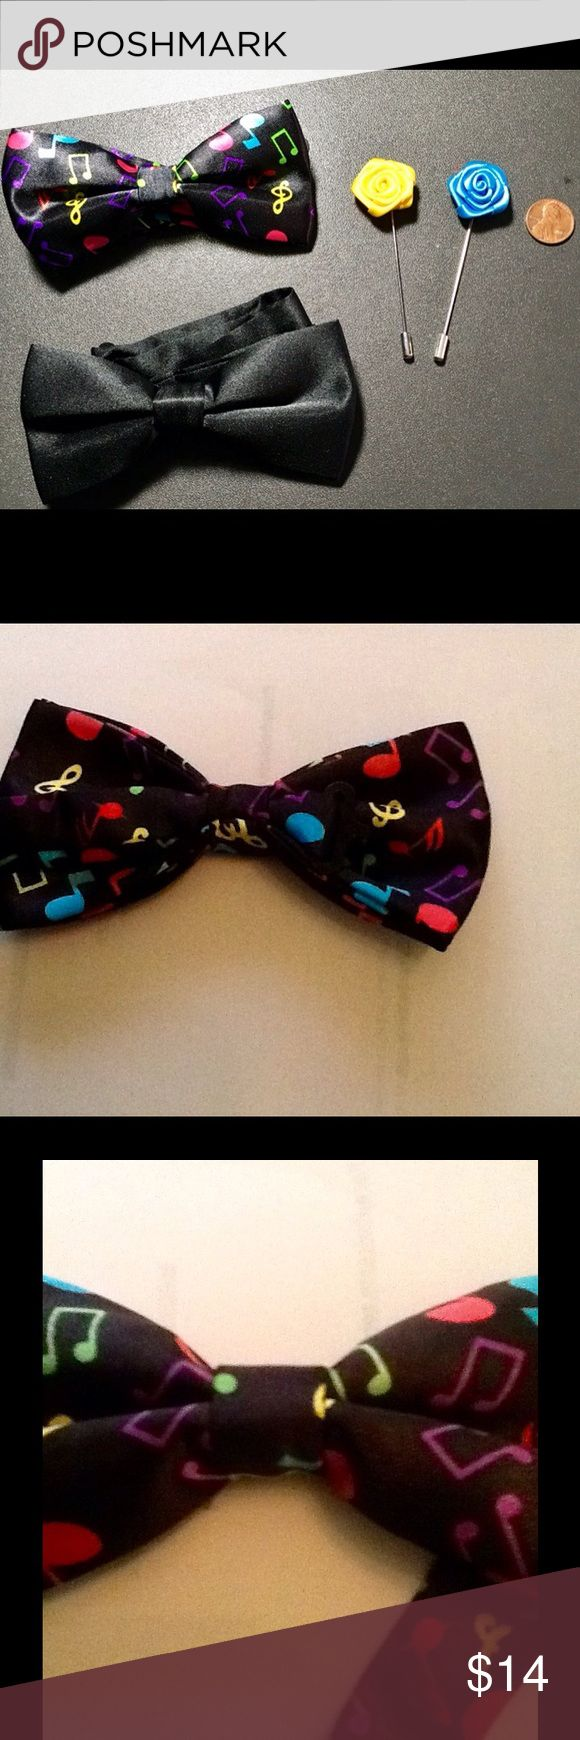 2 Youth Bow Ties with Lapel Flower New Chic Colorful Musical Note Design  and a Black Young Man's Bow Tie Adjustable  Neck Strap  Color - Black/ Multi-Color and Black with Blue and Yellow Lapel Flower Pin Matching Sets